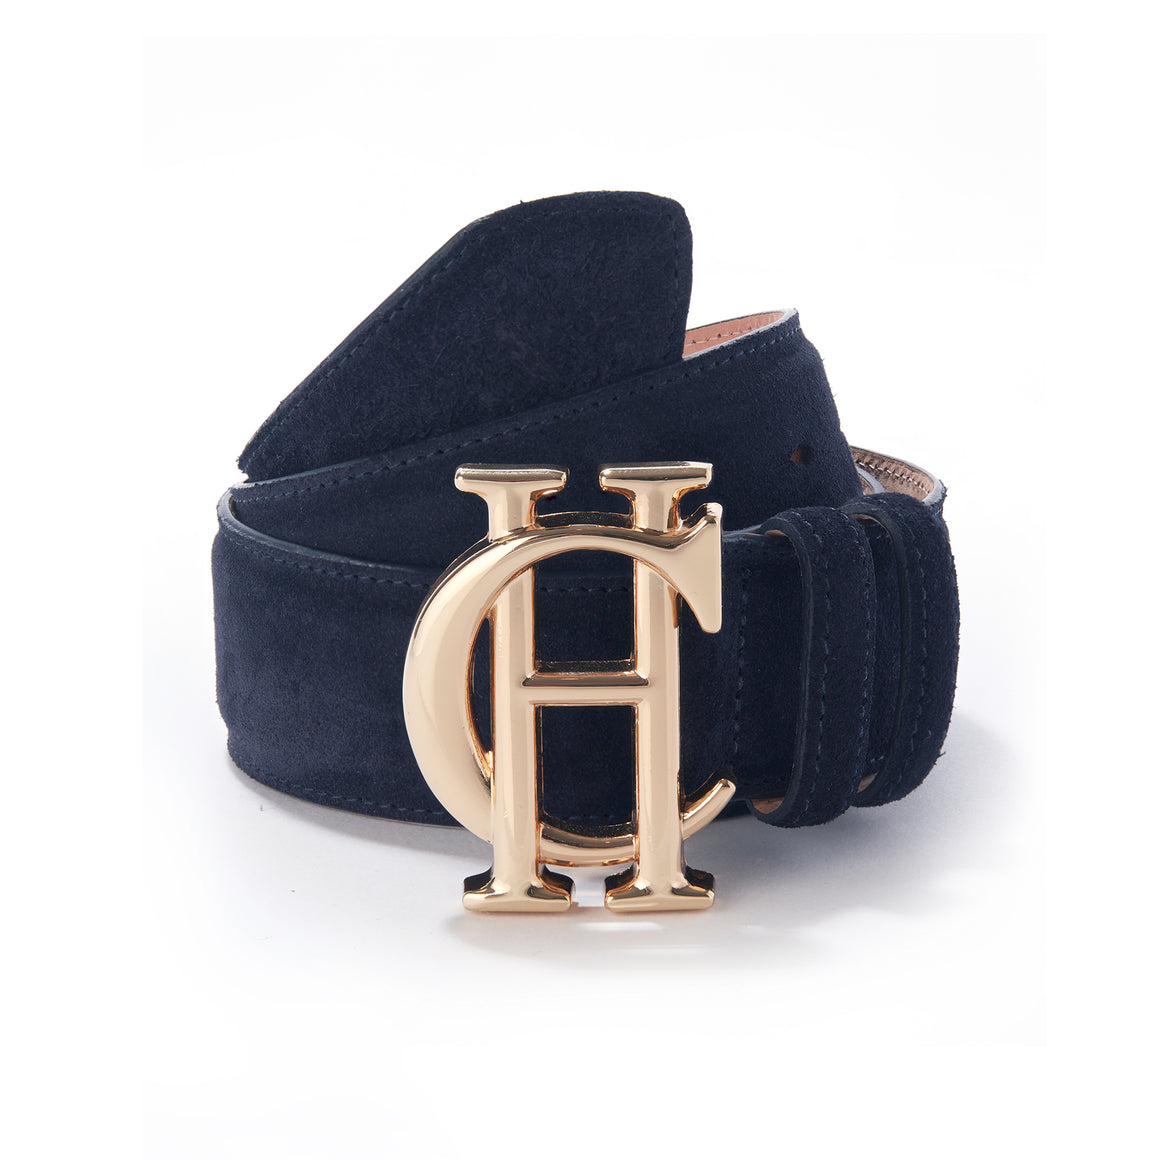 HC Suede Belt for Women in Ink Navy